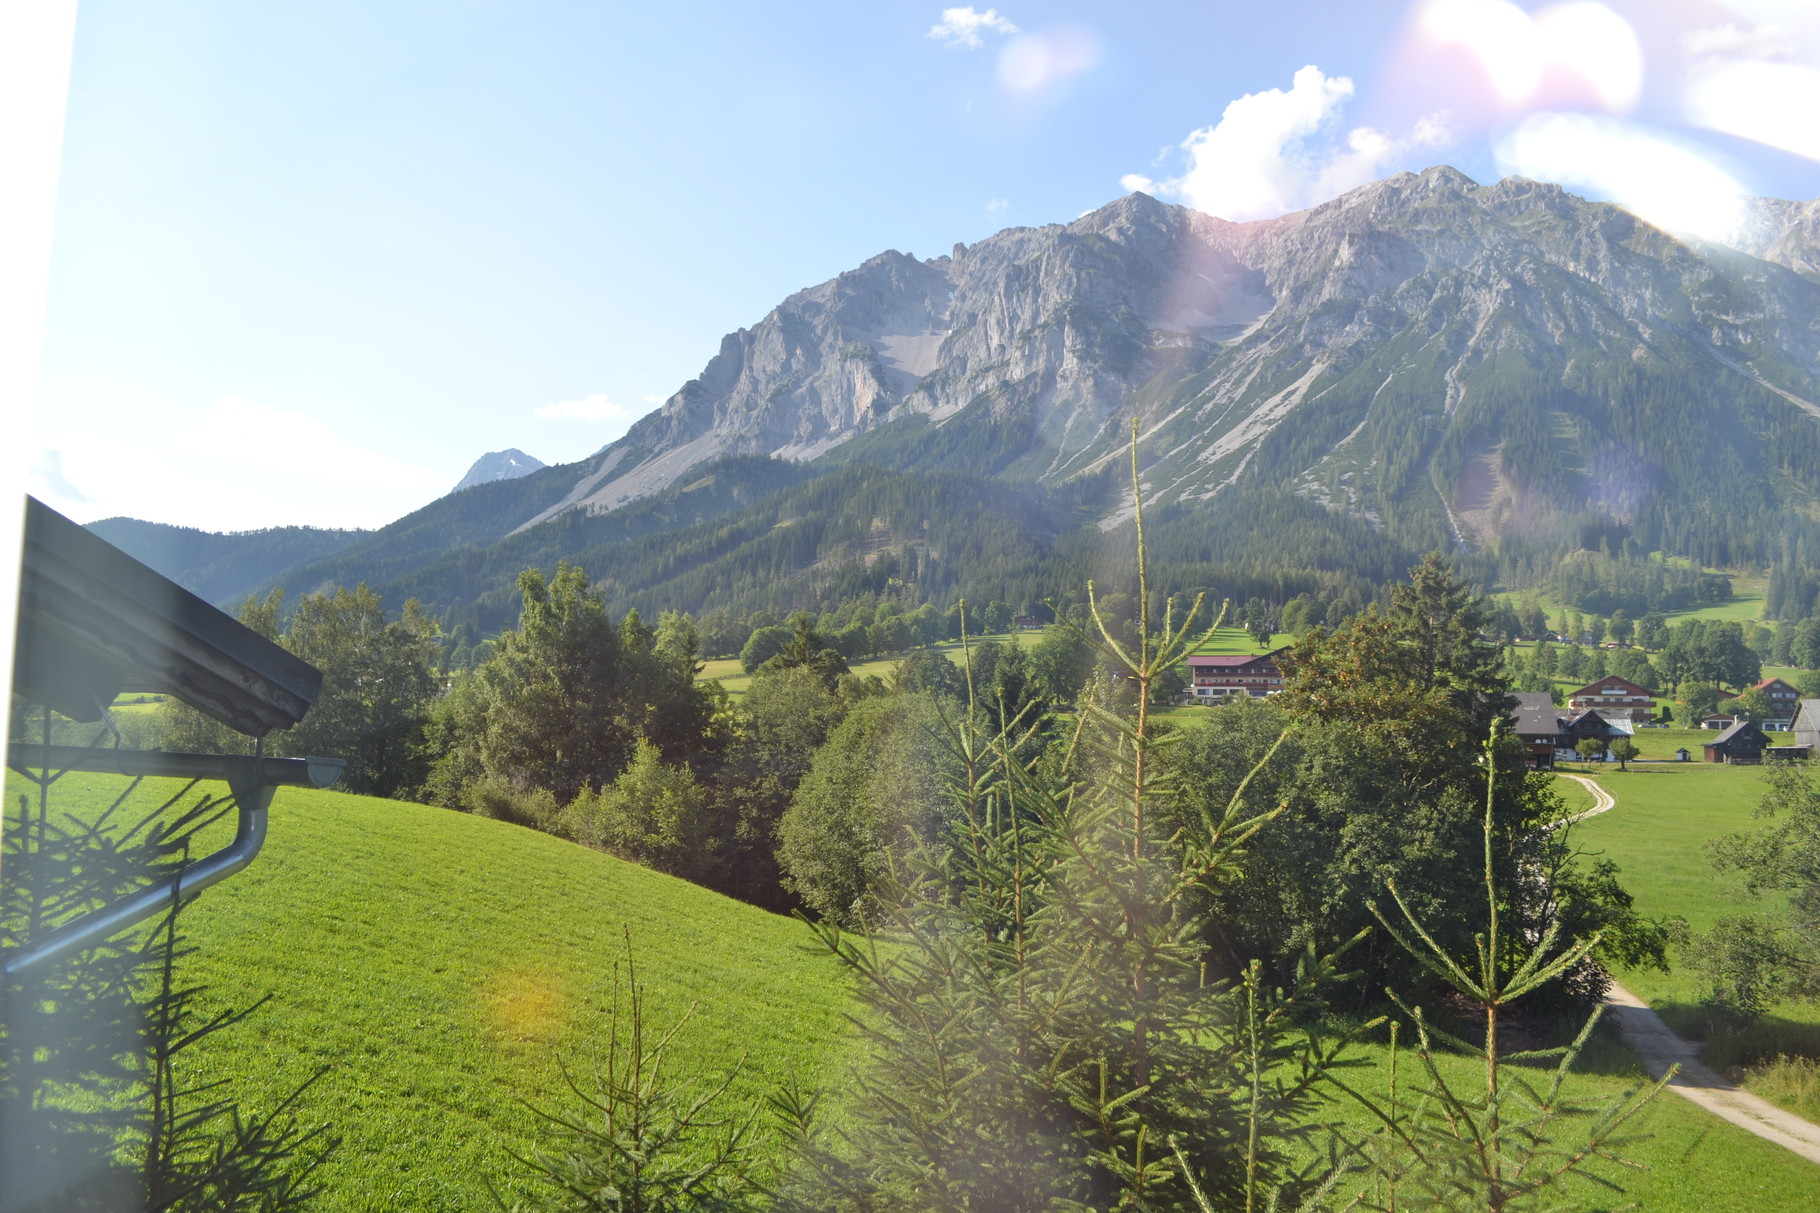 View to the north, to the Dachstein